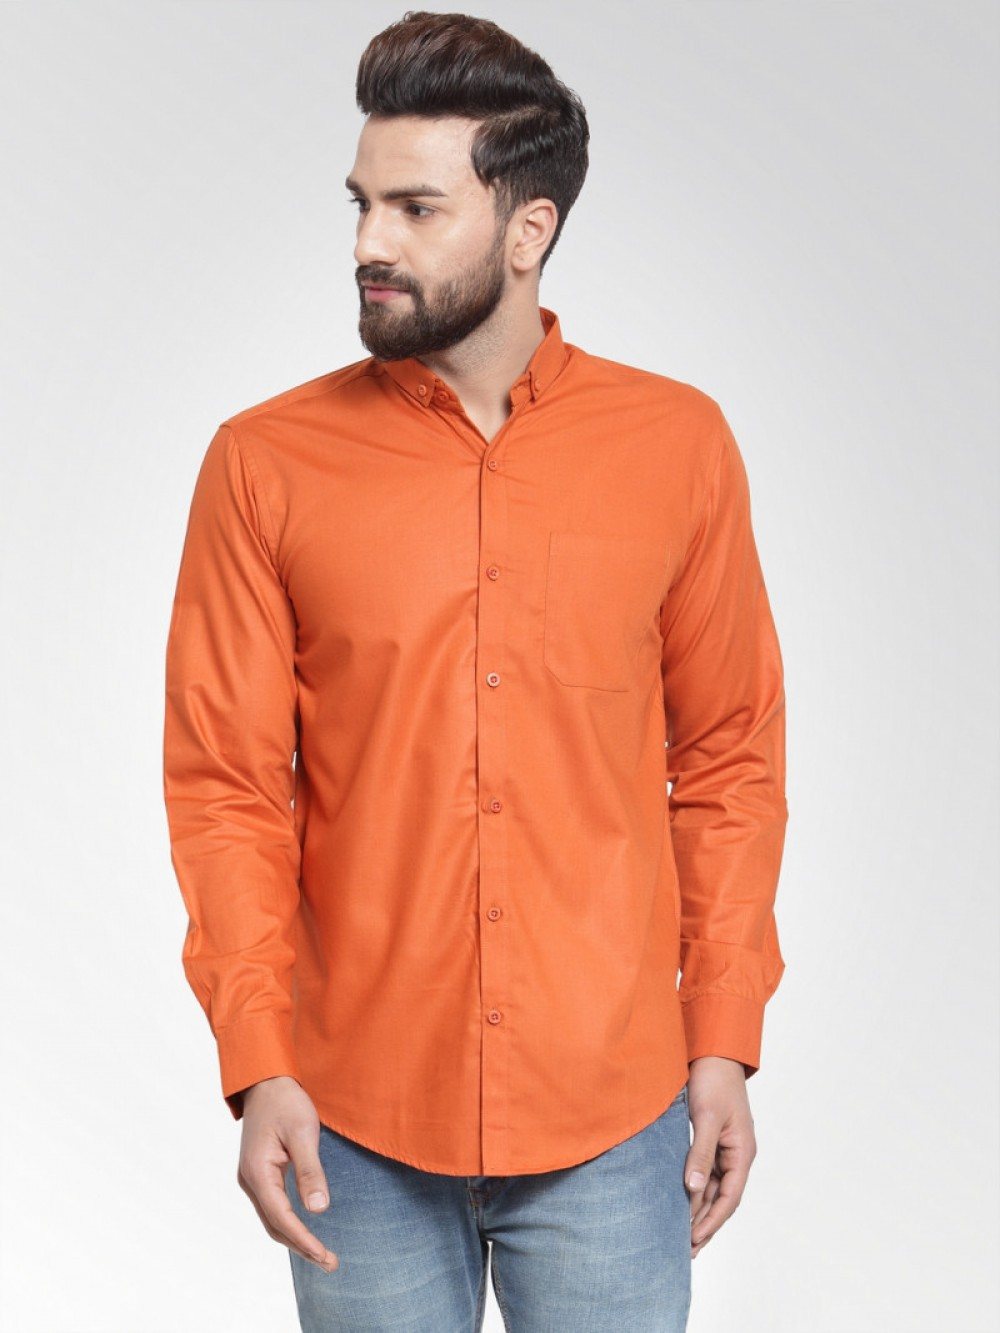 Attractive Plain Orange Colored Full Sleeves Shirt